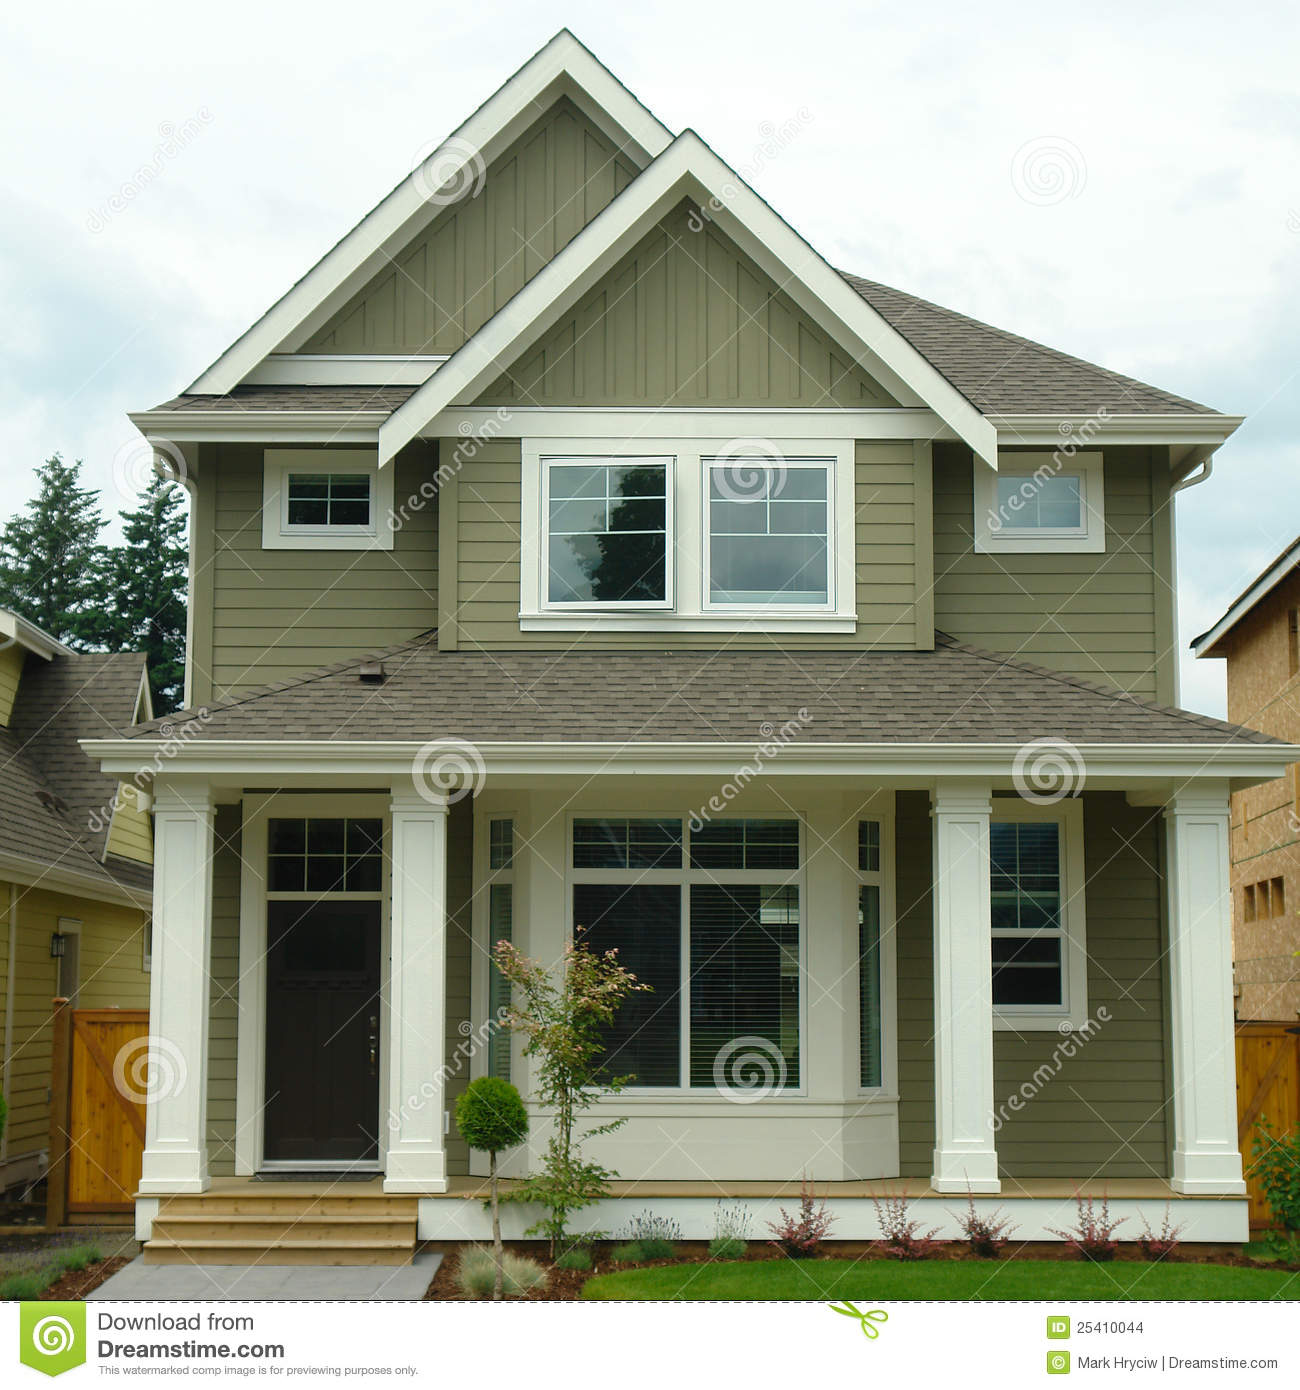 New Home House Exterior Stock Photo Image Of Setting 25410044